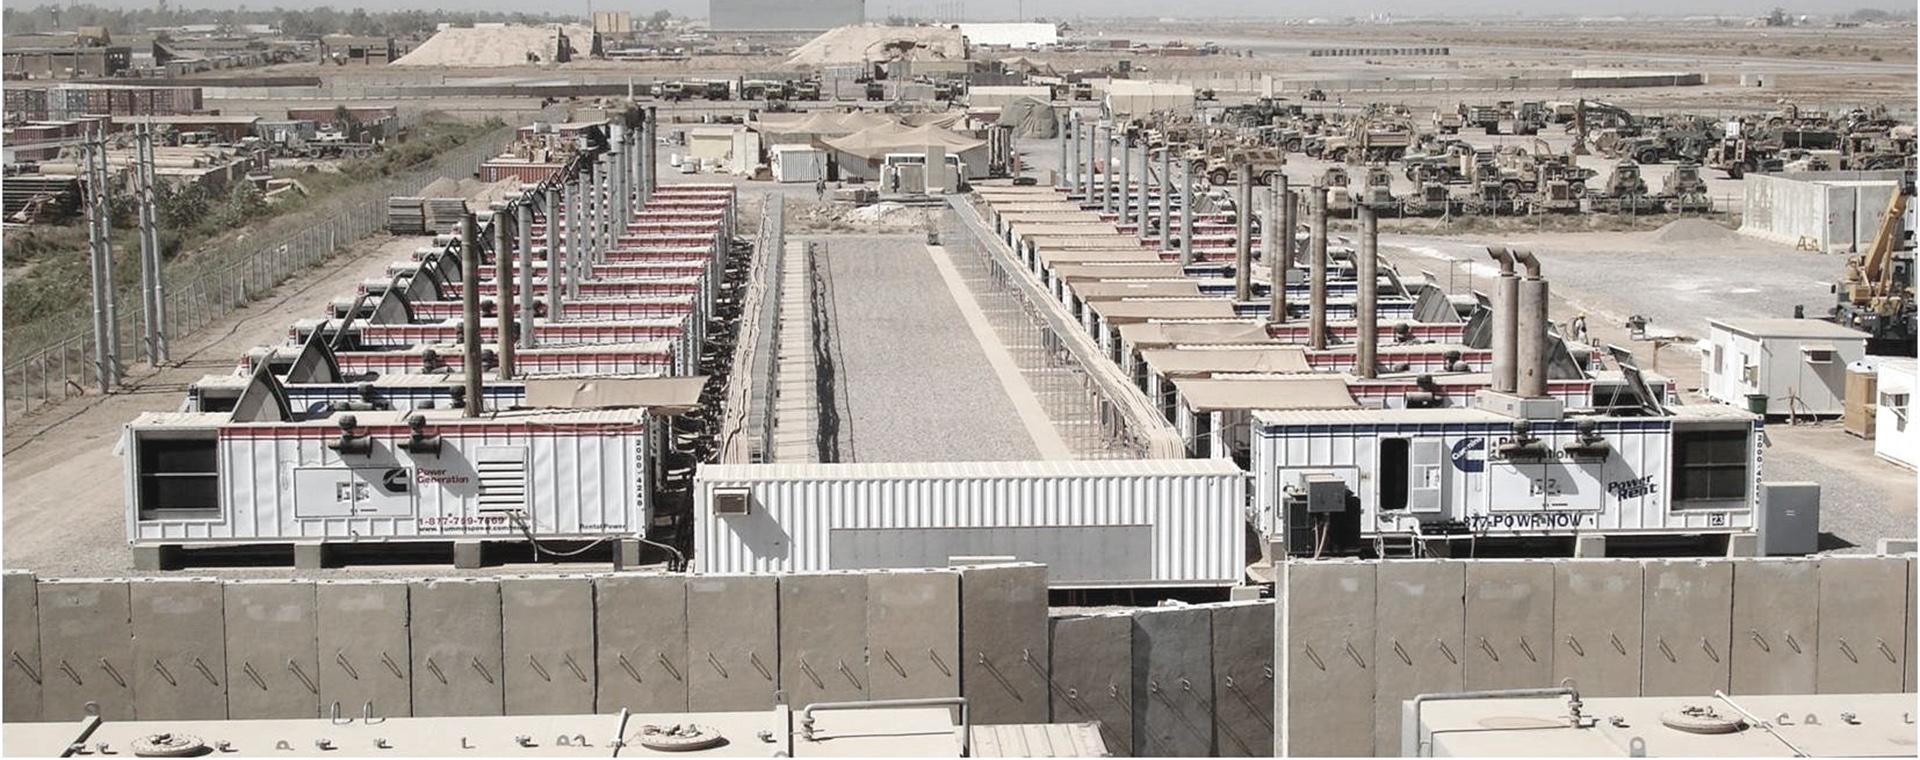 Exterior view of row of diesel generators behind a cement barricade